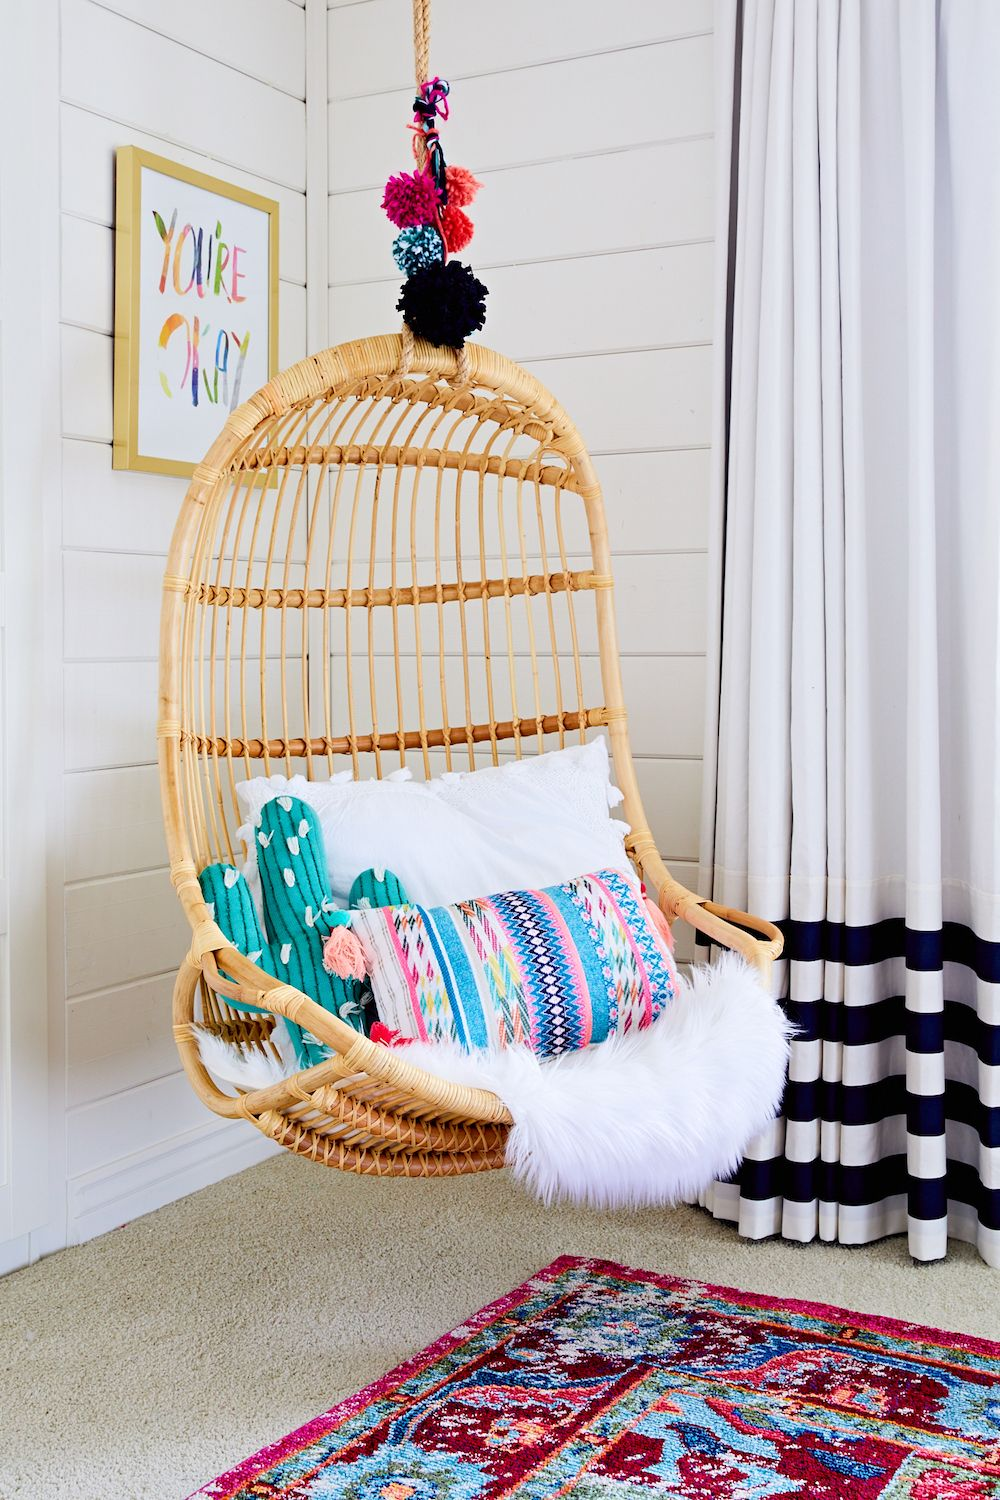 Trendspotting Hanging Chairs Are Swinging Into Kids Design Project Nursery Small Kids Room Girls Room Decor